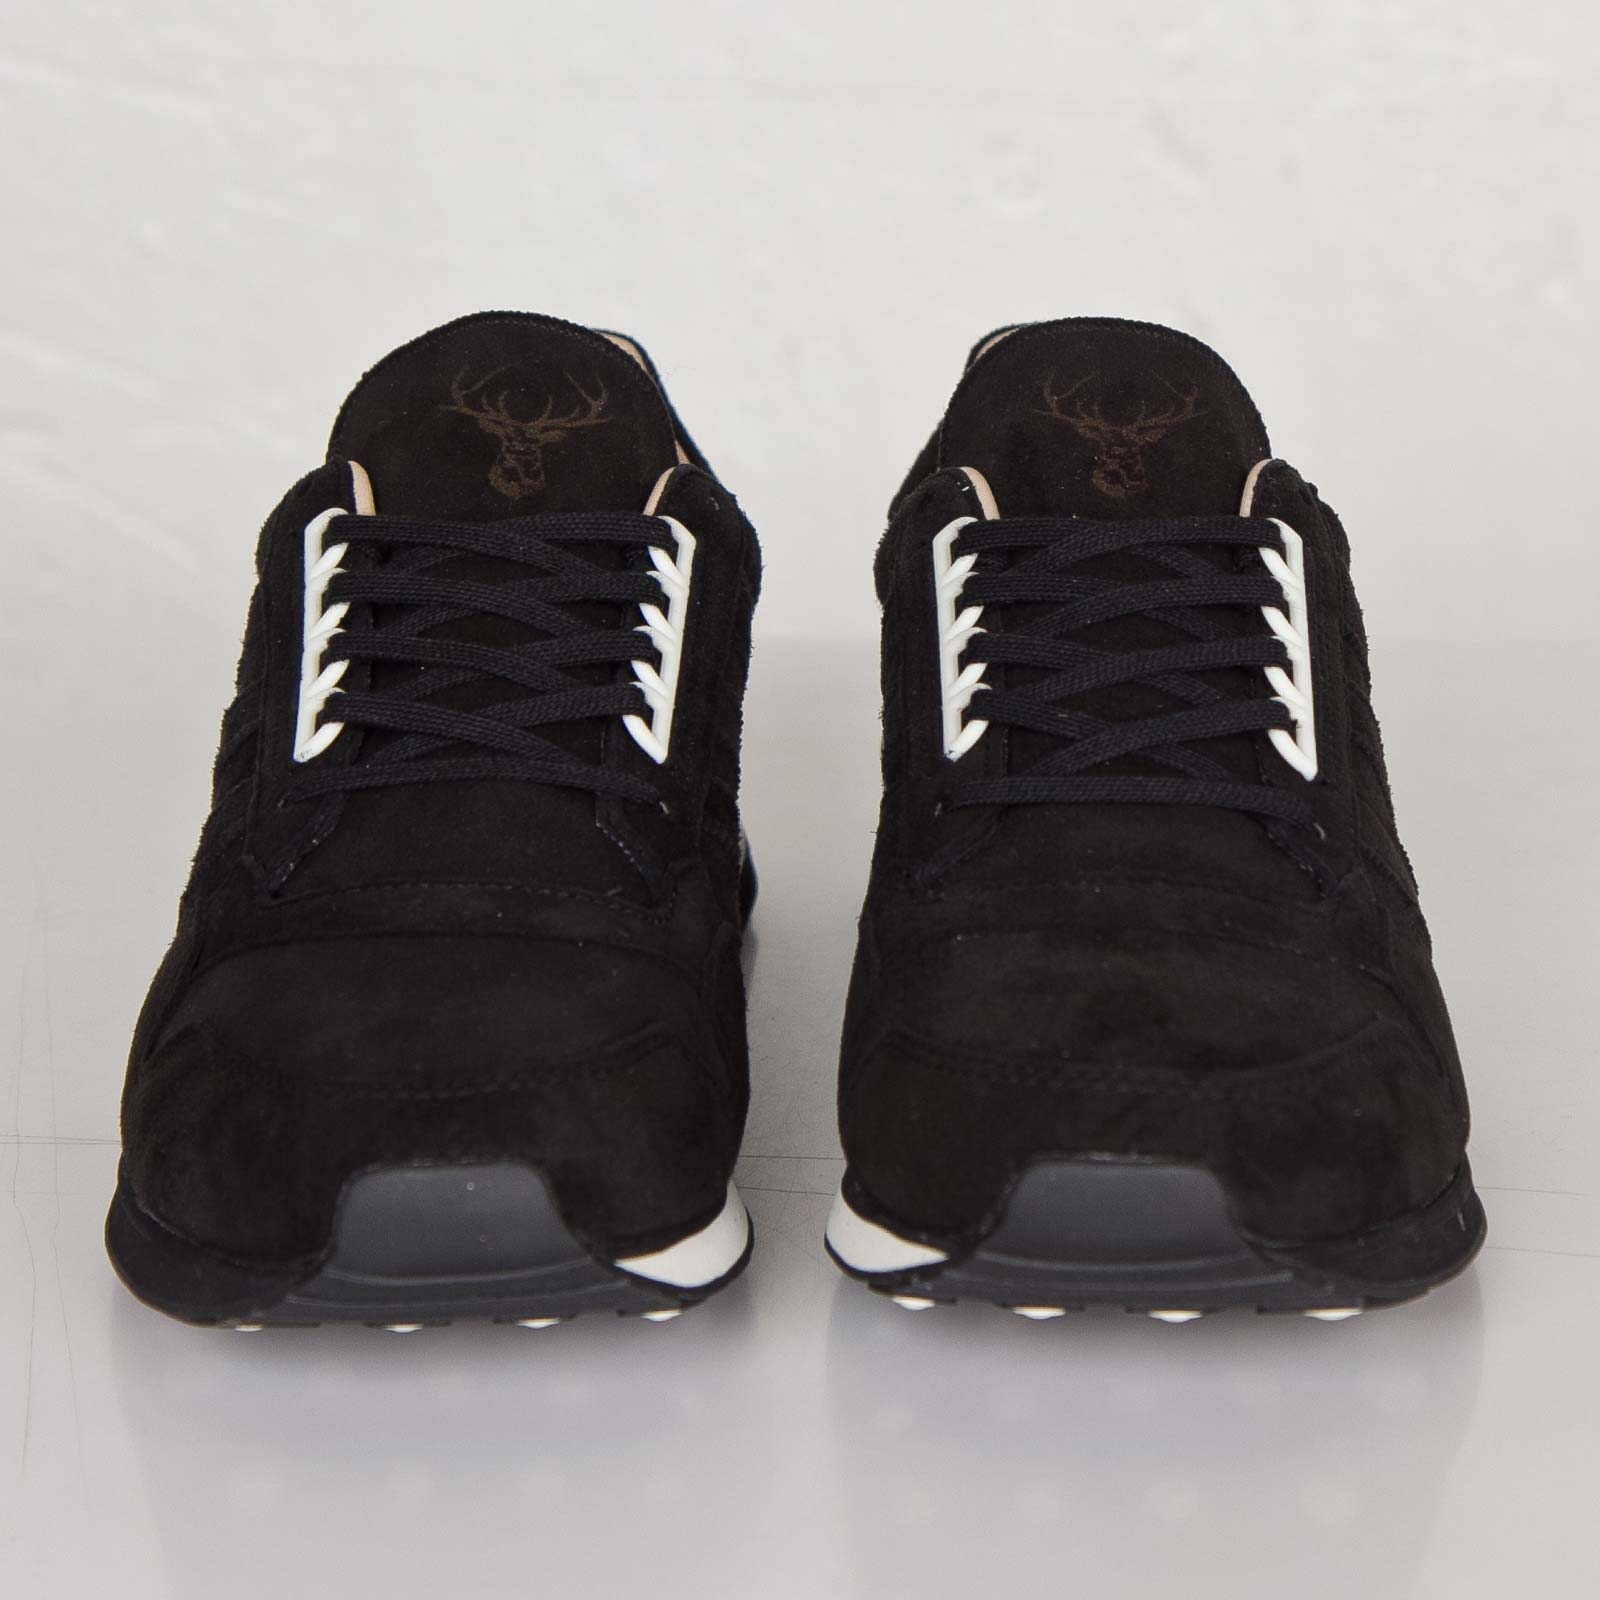 0a5d588df where can i buy adidas zx 500 og made in germany black 5e8c9 9f976